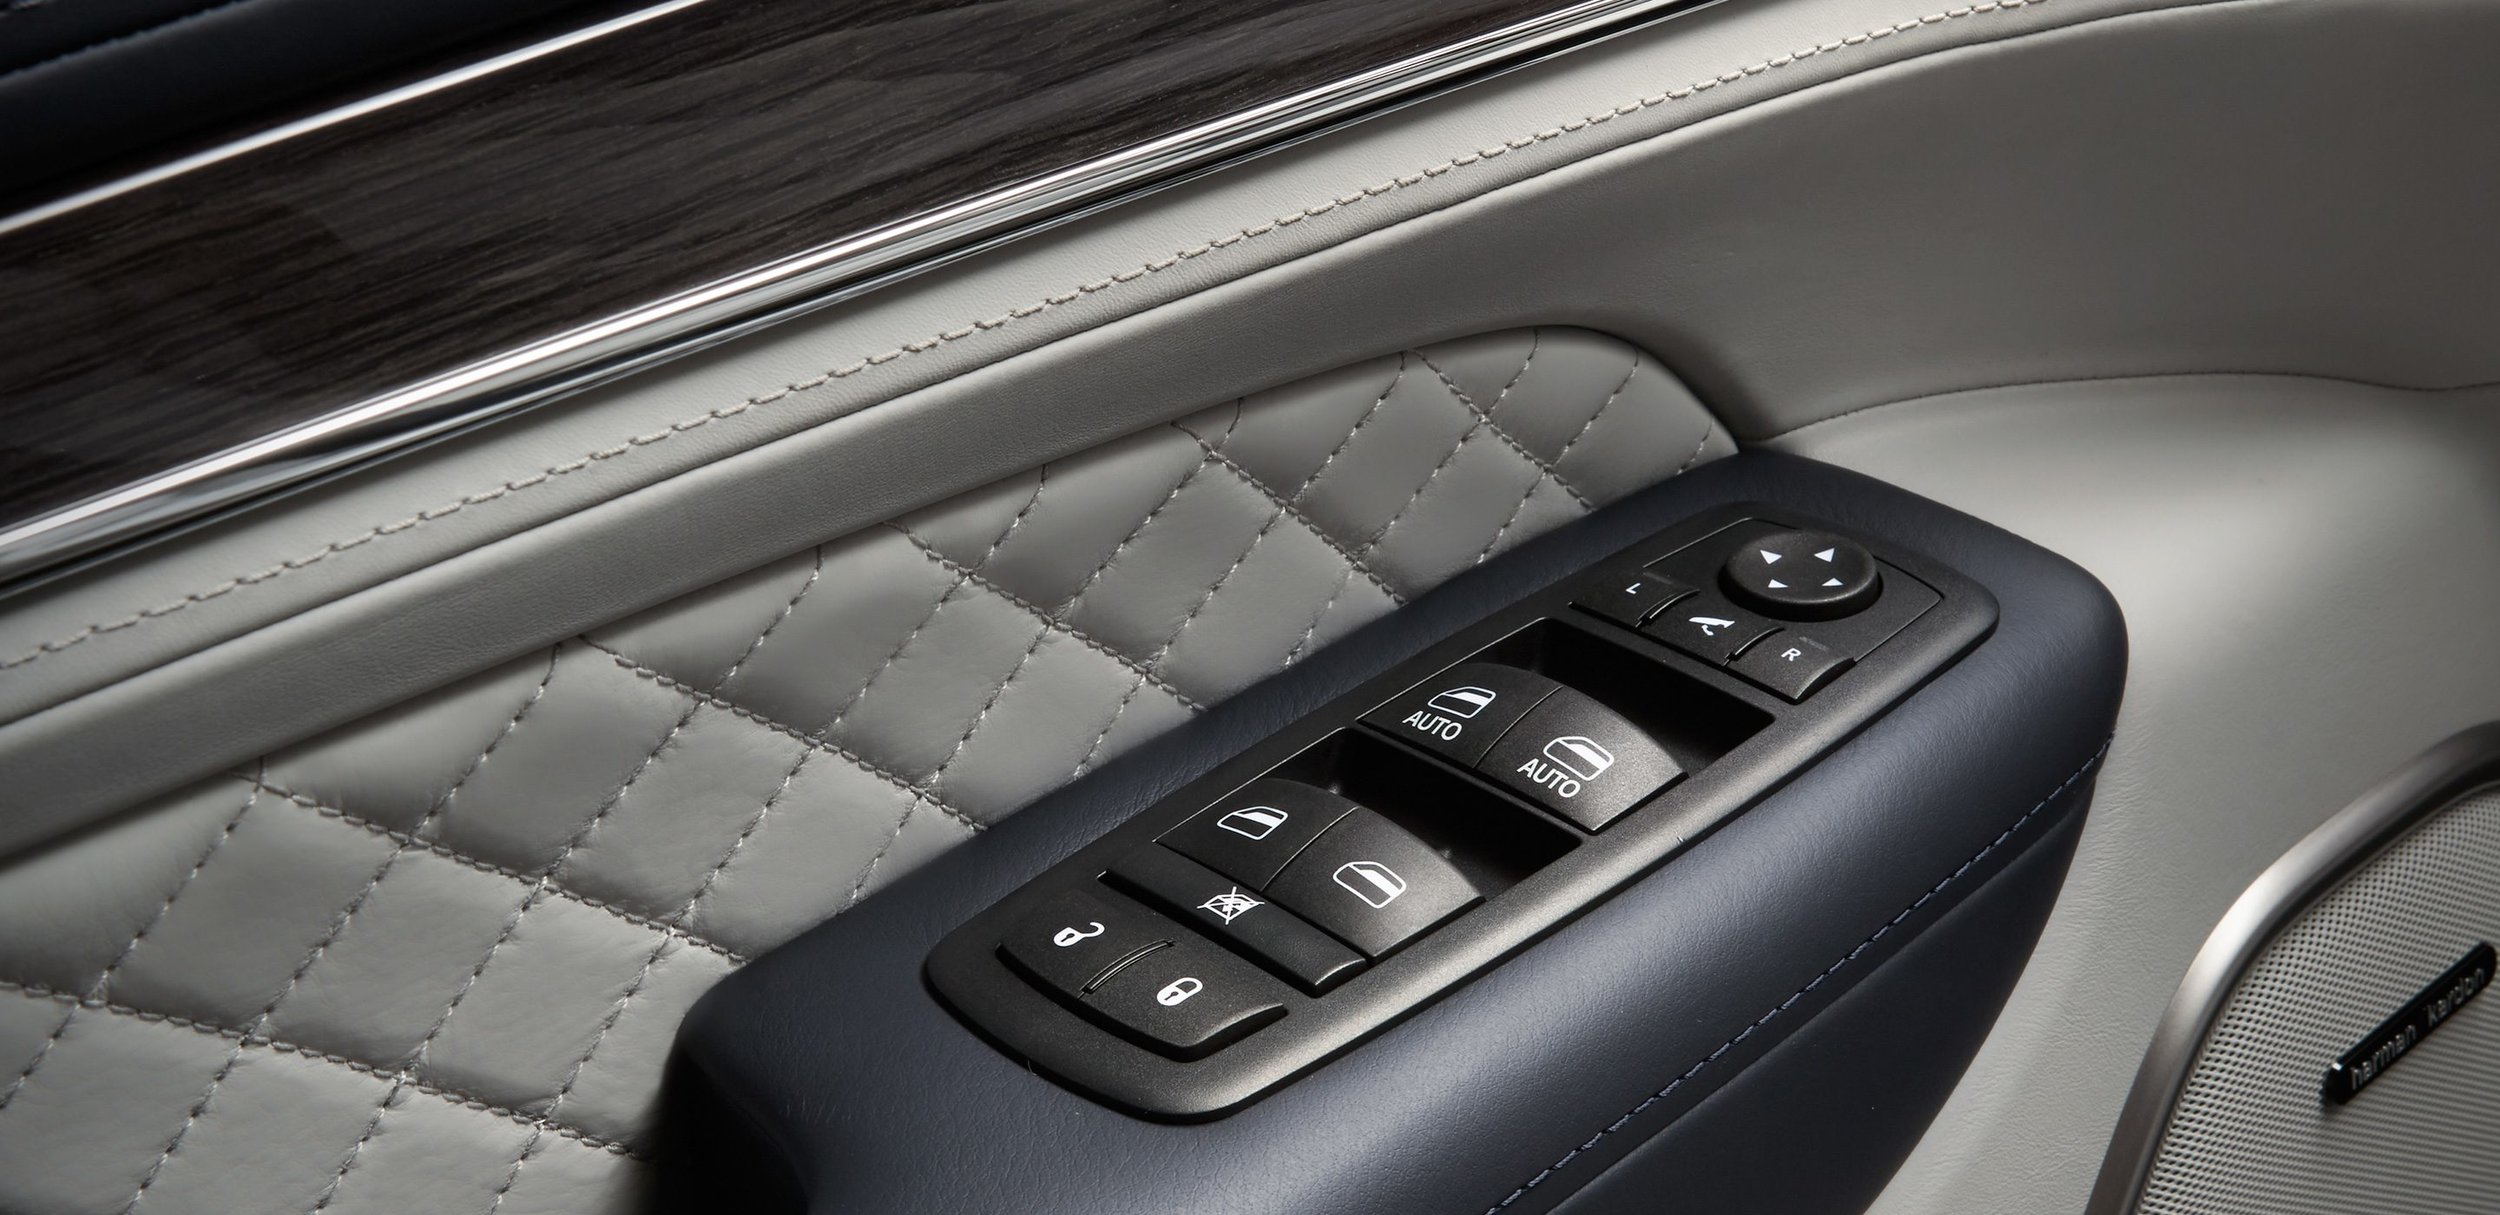 2017-Jeep-Grand-Cherokee-Gallery-Interior-Door-Controls.jpg.image.2880.jpg